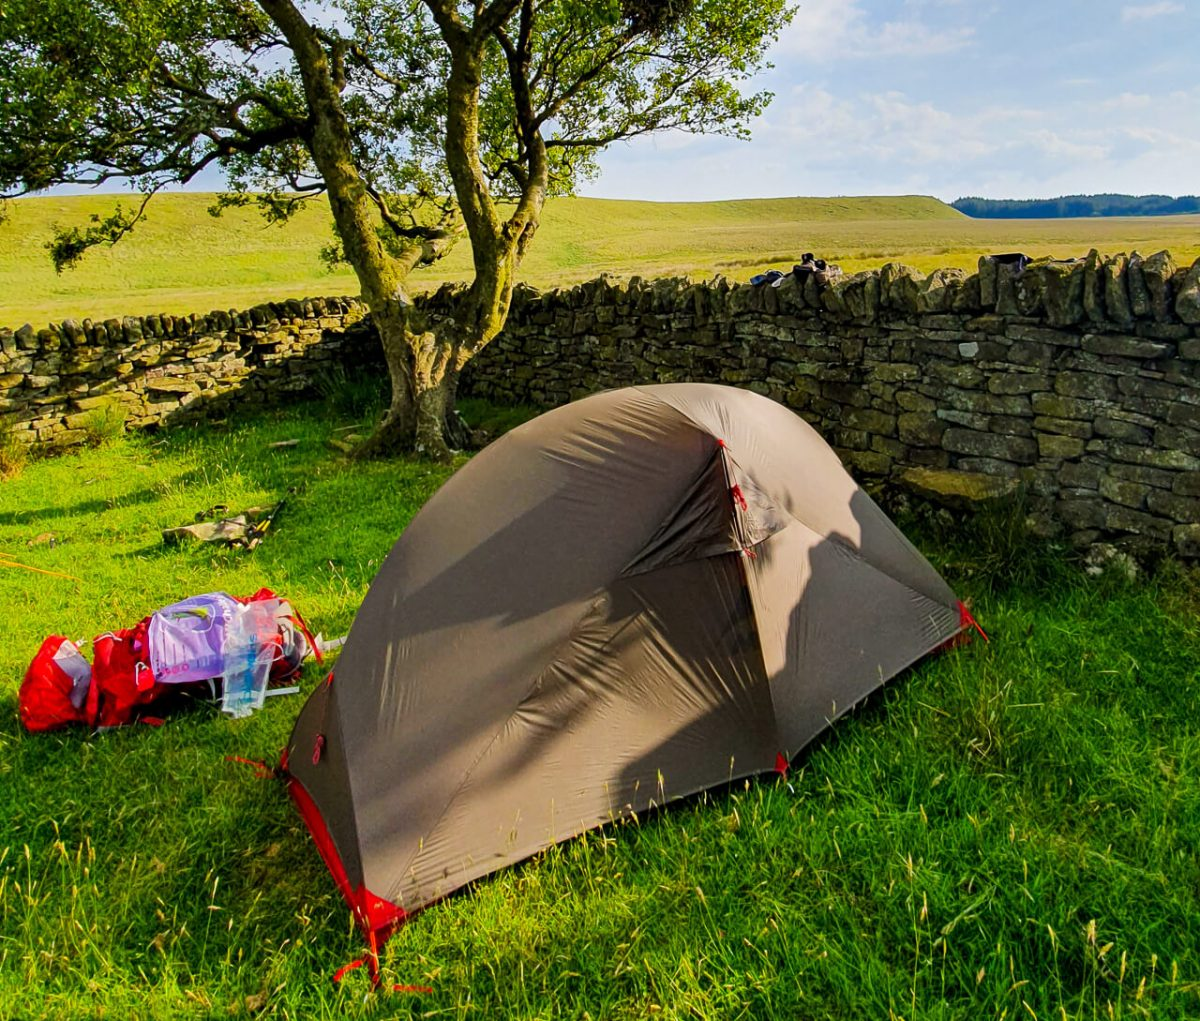 MSR Hubba NX - perfect for backpacking + wild camping trips